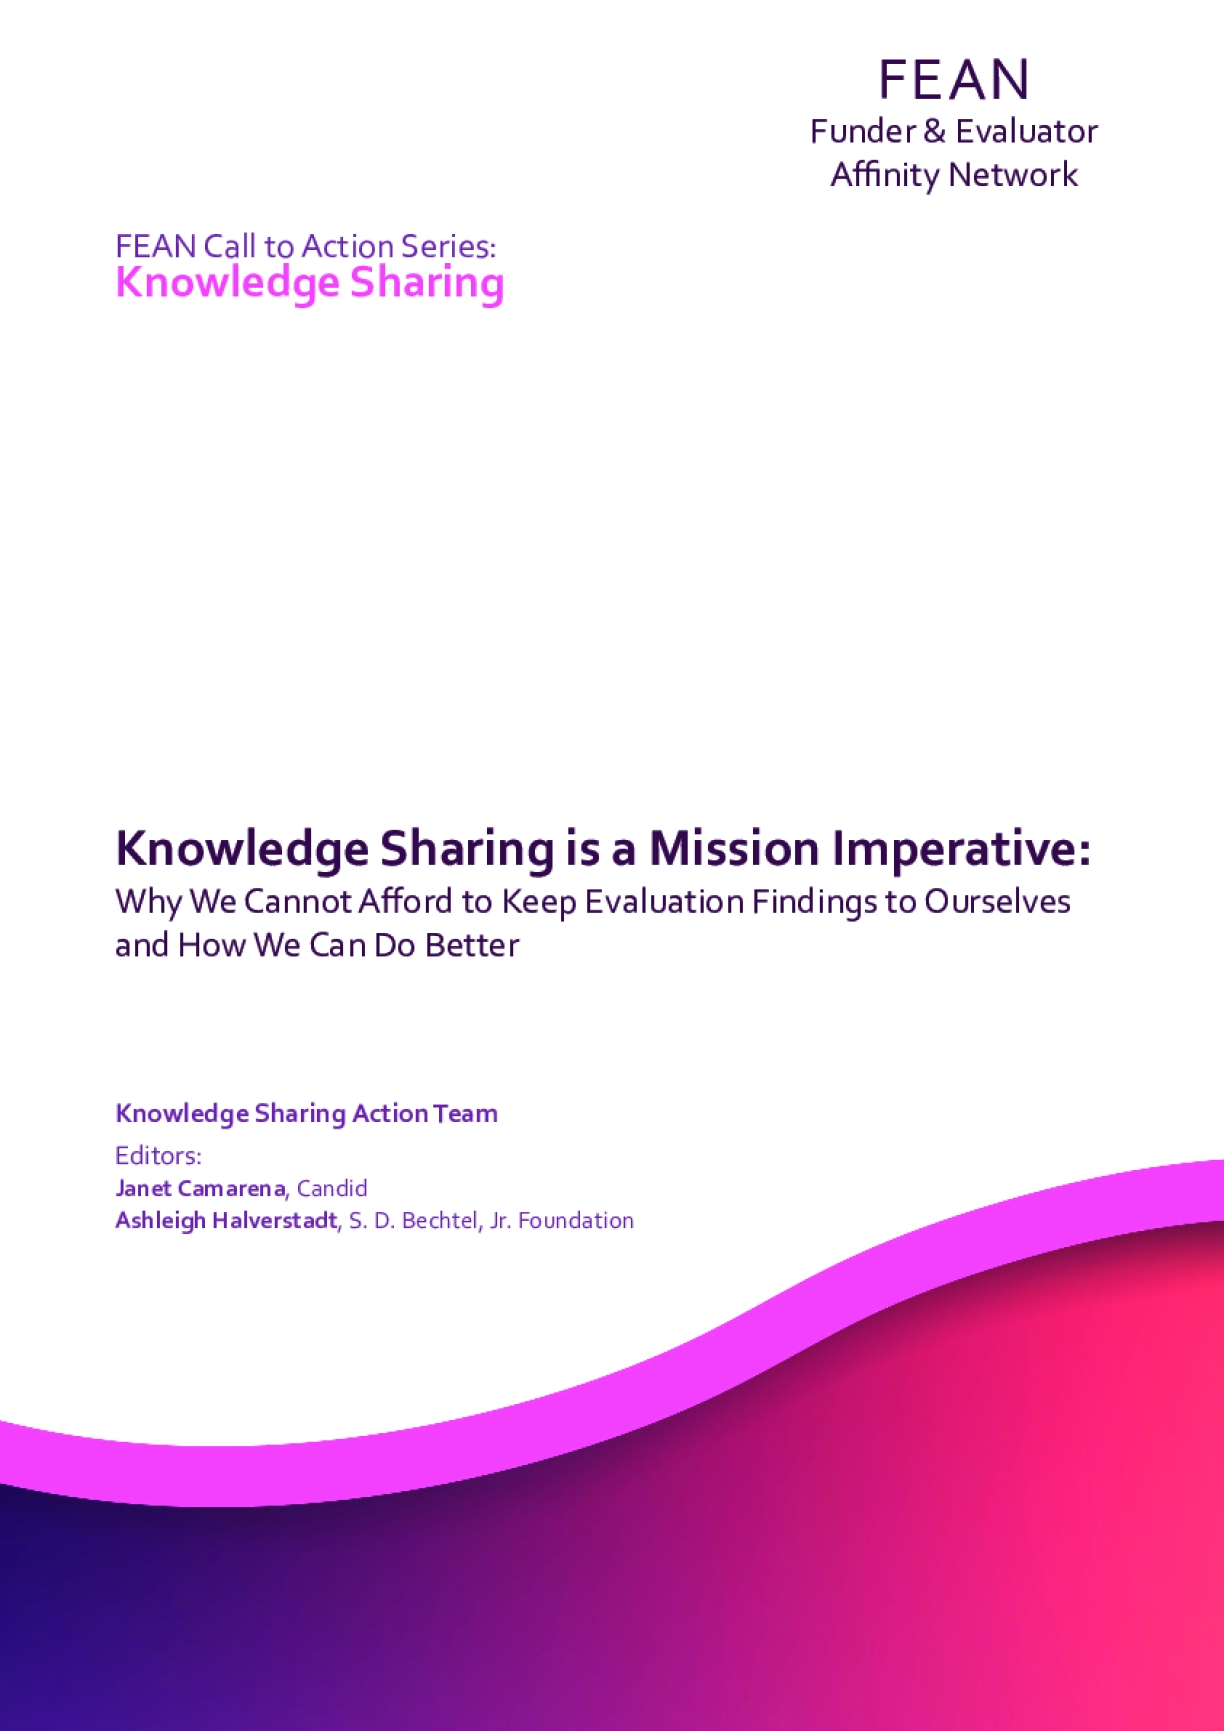 Knowledge Sharing is a Mission Imperative: Why We Cannot Afford to Keep Evaluation Findings to Ourselves and How We Can Do Better